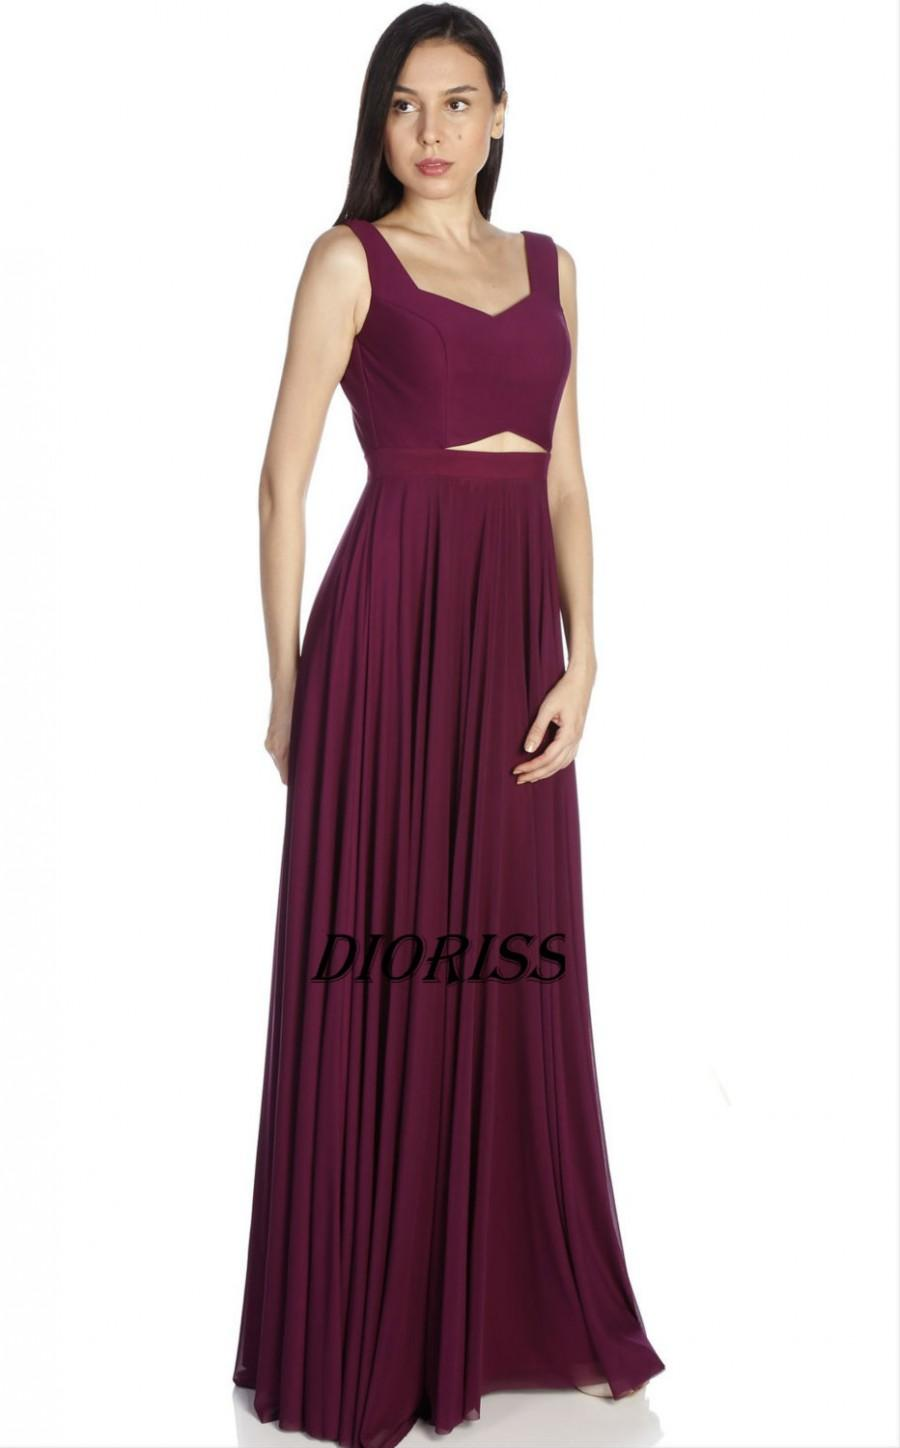 Mariage - Burgundy Bridesmaid Dress, Double Straps Long Prom Dress, Chiffon Evening Gown, Sweetheart Formal Dress Floor Length